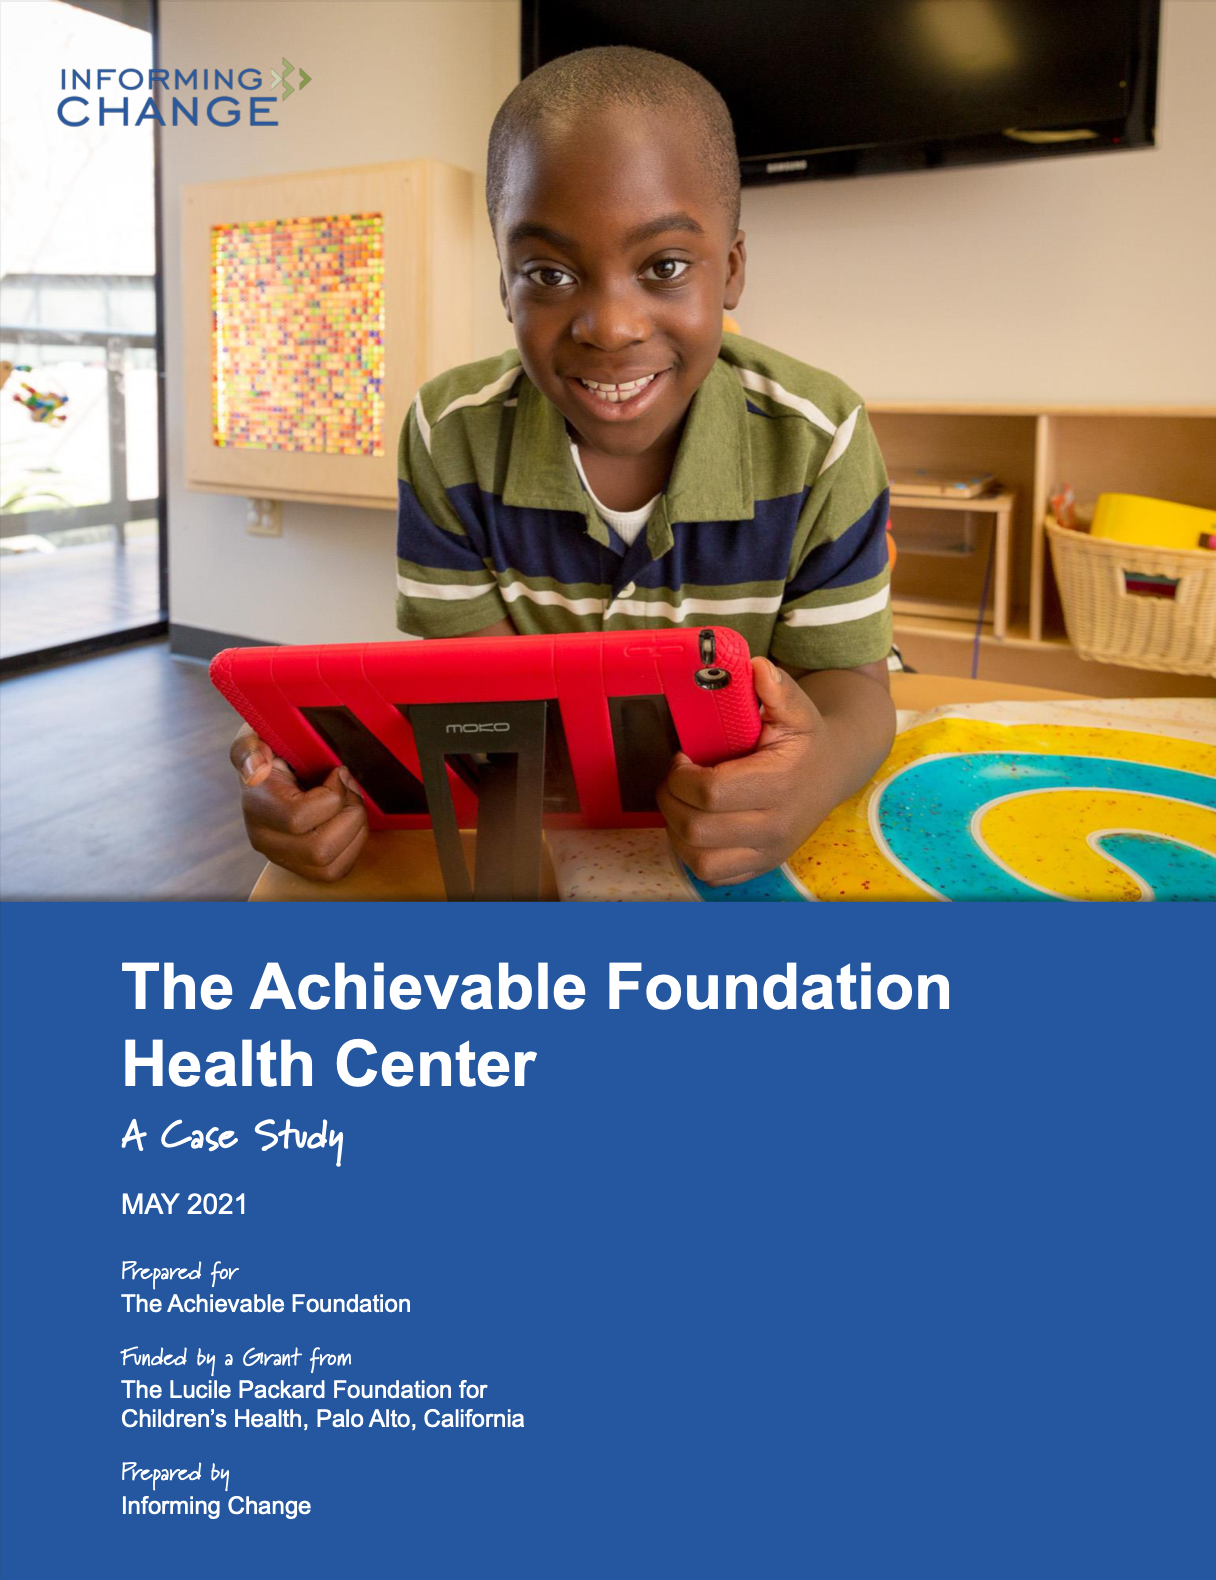 page 1 of The achievable foundation case study